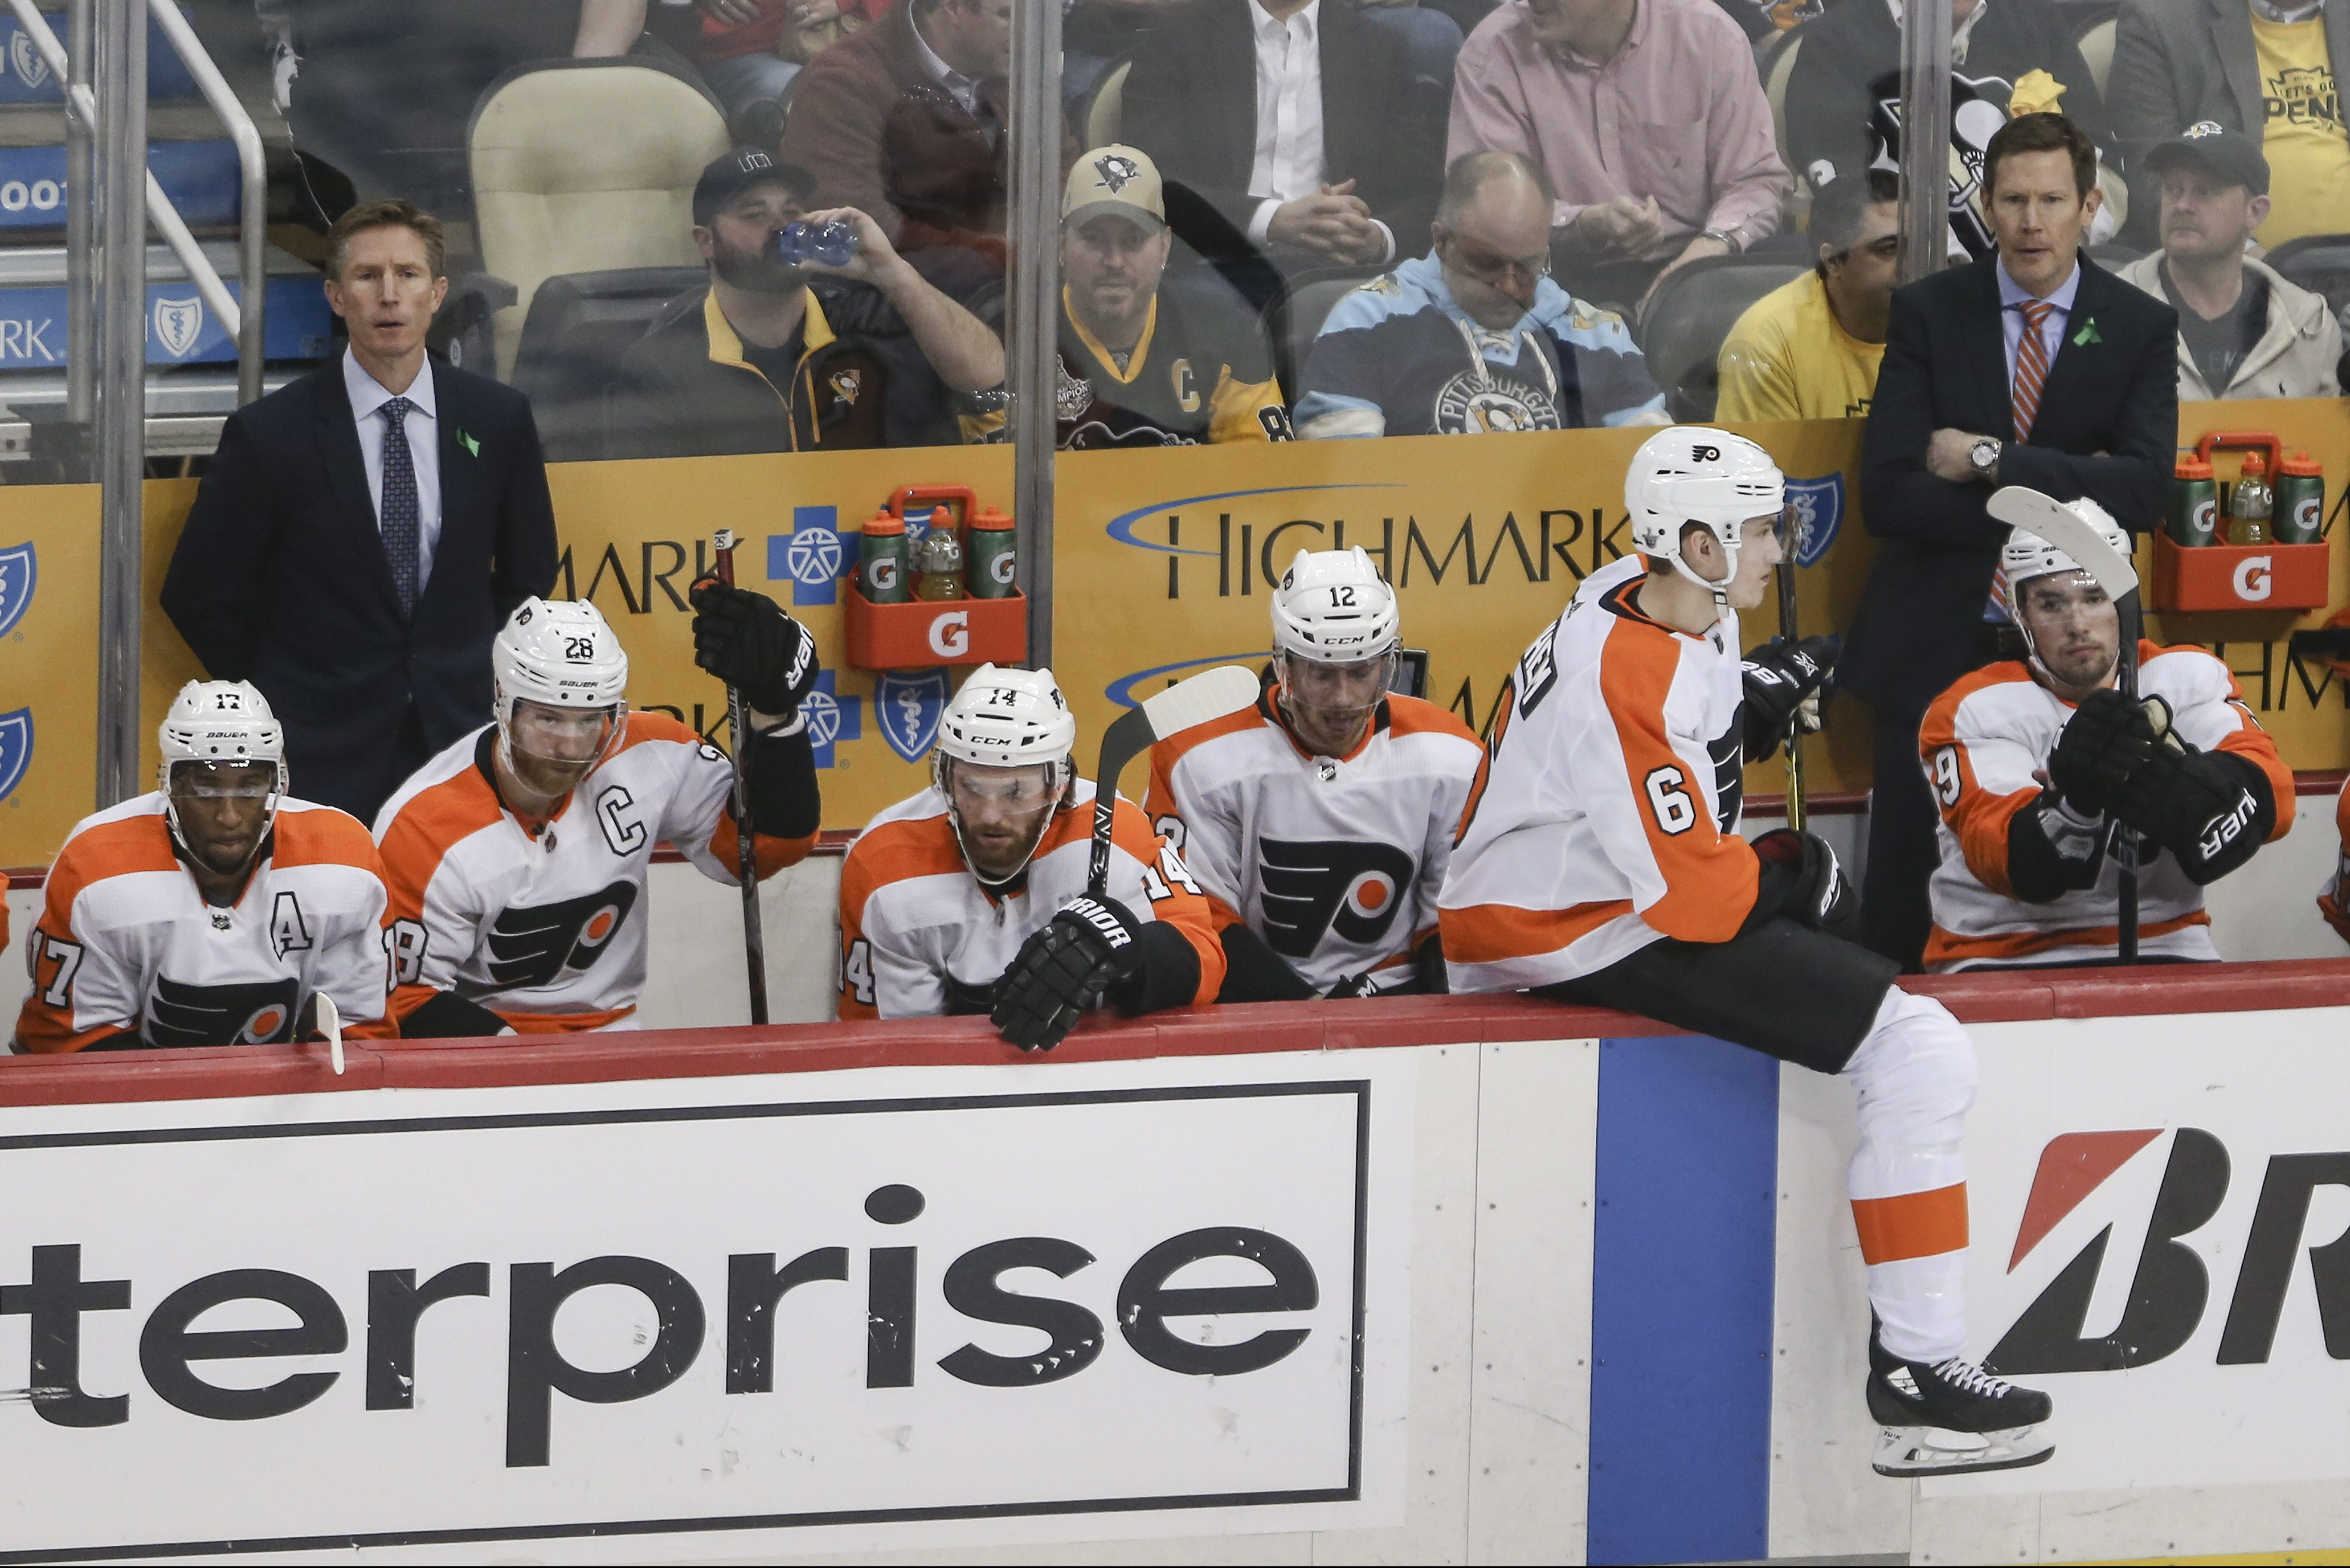 The Flyers´ bench during the third period of Wednesday night´s 7-0 loss to Pittsburgh in Game 1 of the Eastern Conference Quarterfinals.